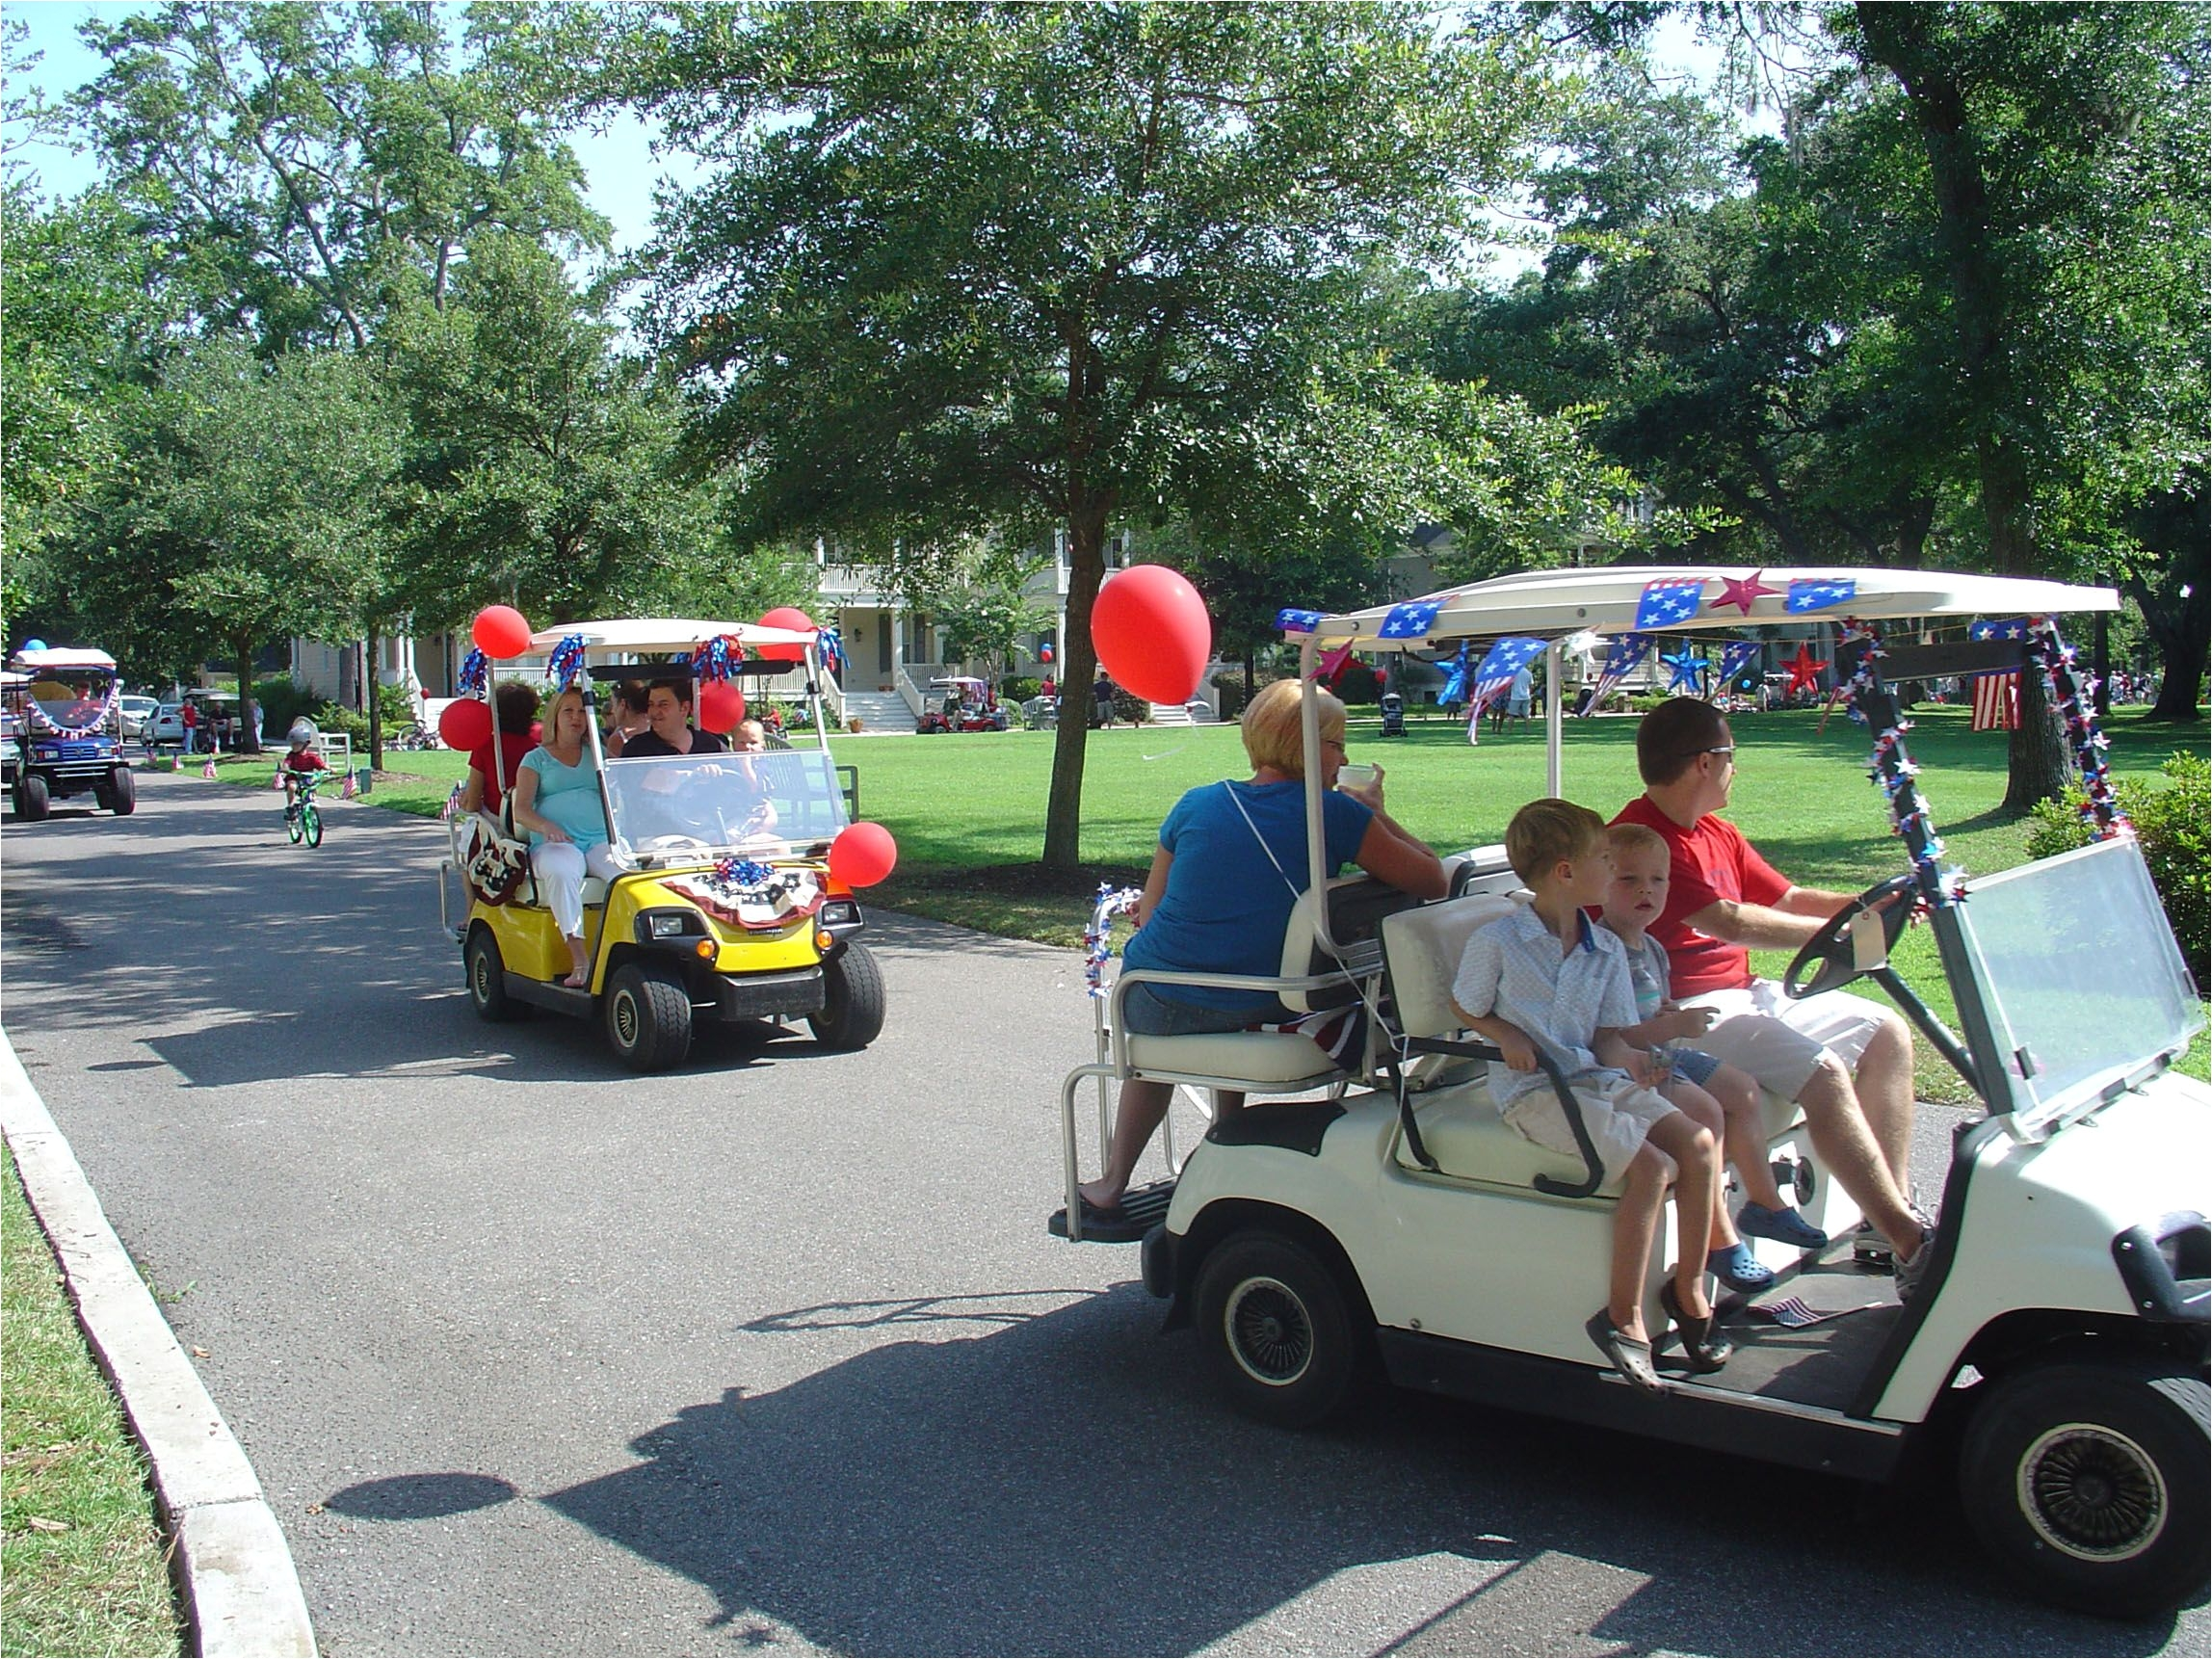 Decorated Golf Cart 4th July Parade Decorate Your Golf Cart Your Bike Tricycle Pets Kids or Yourself